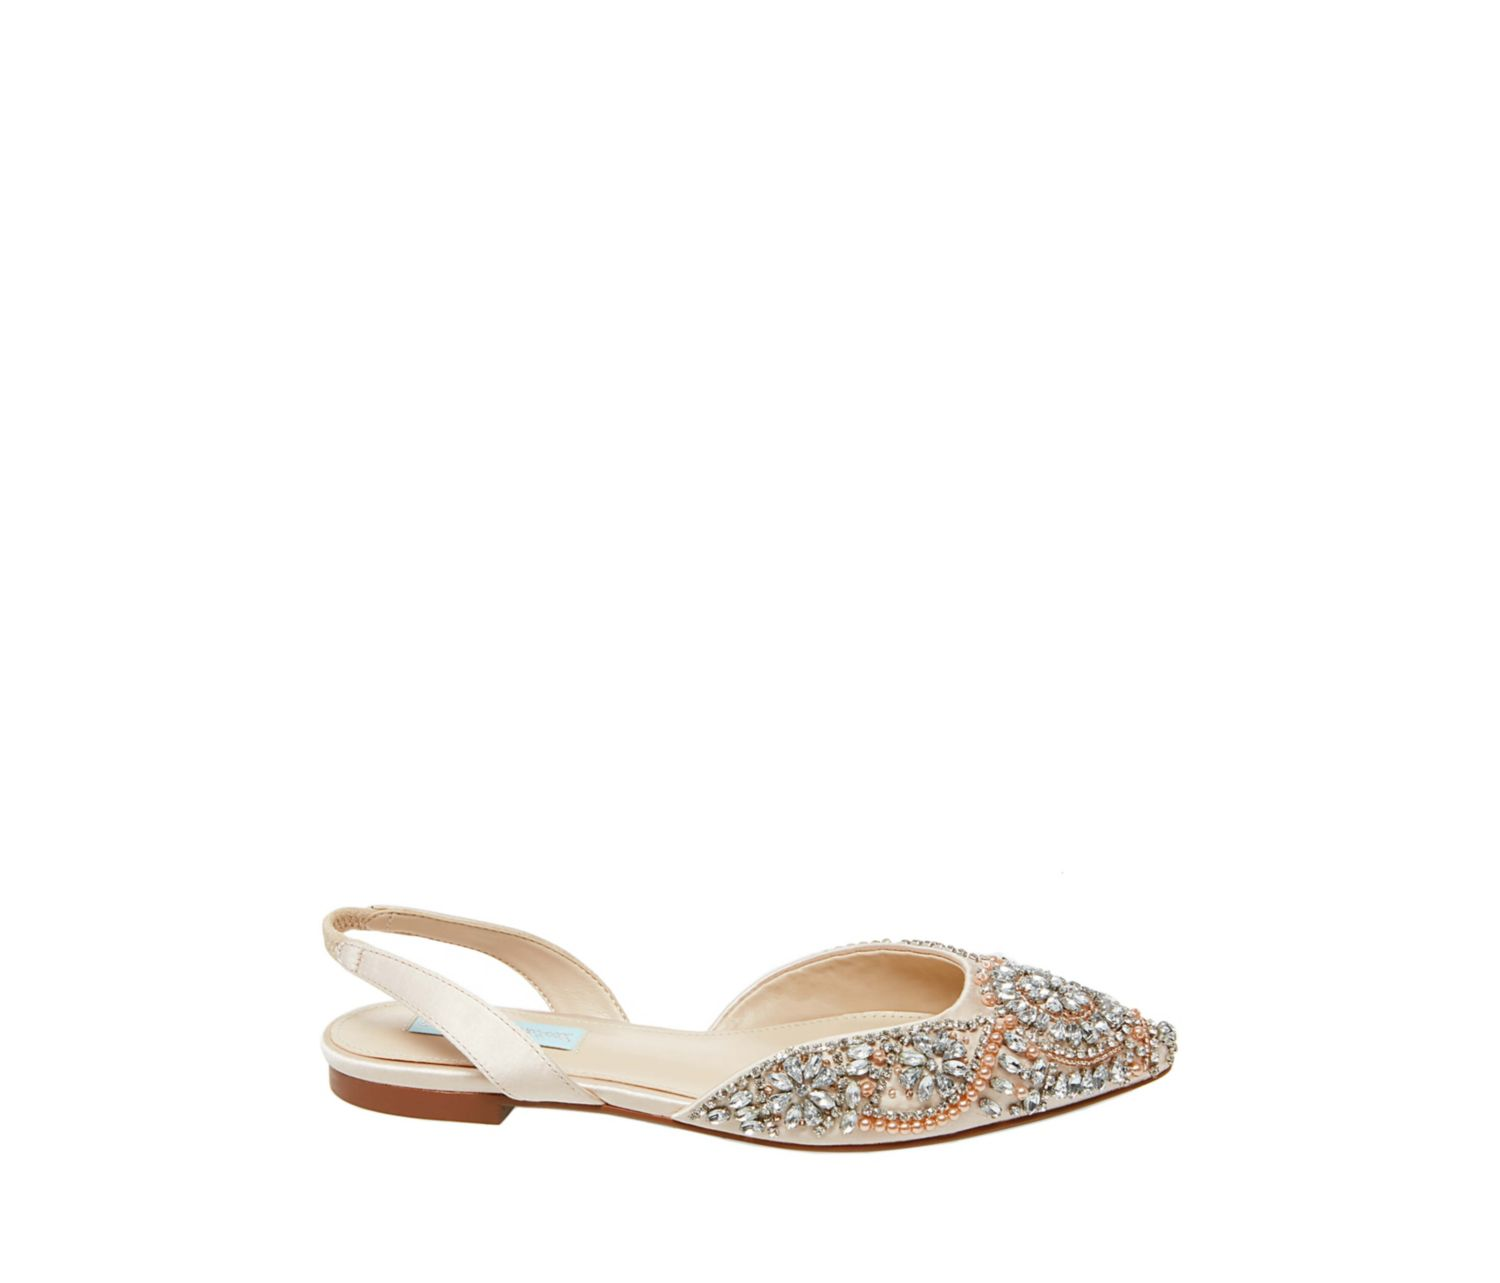 8962f6647dd ... SB-MOLLY CHAMPAGNE SATIN - SHOES - Betsey Johnson ...